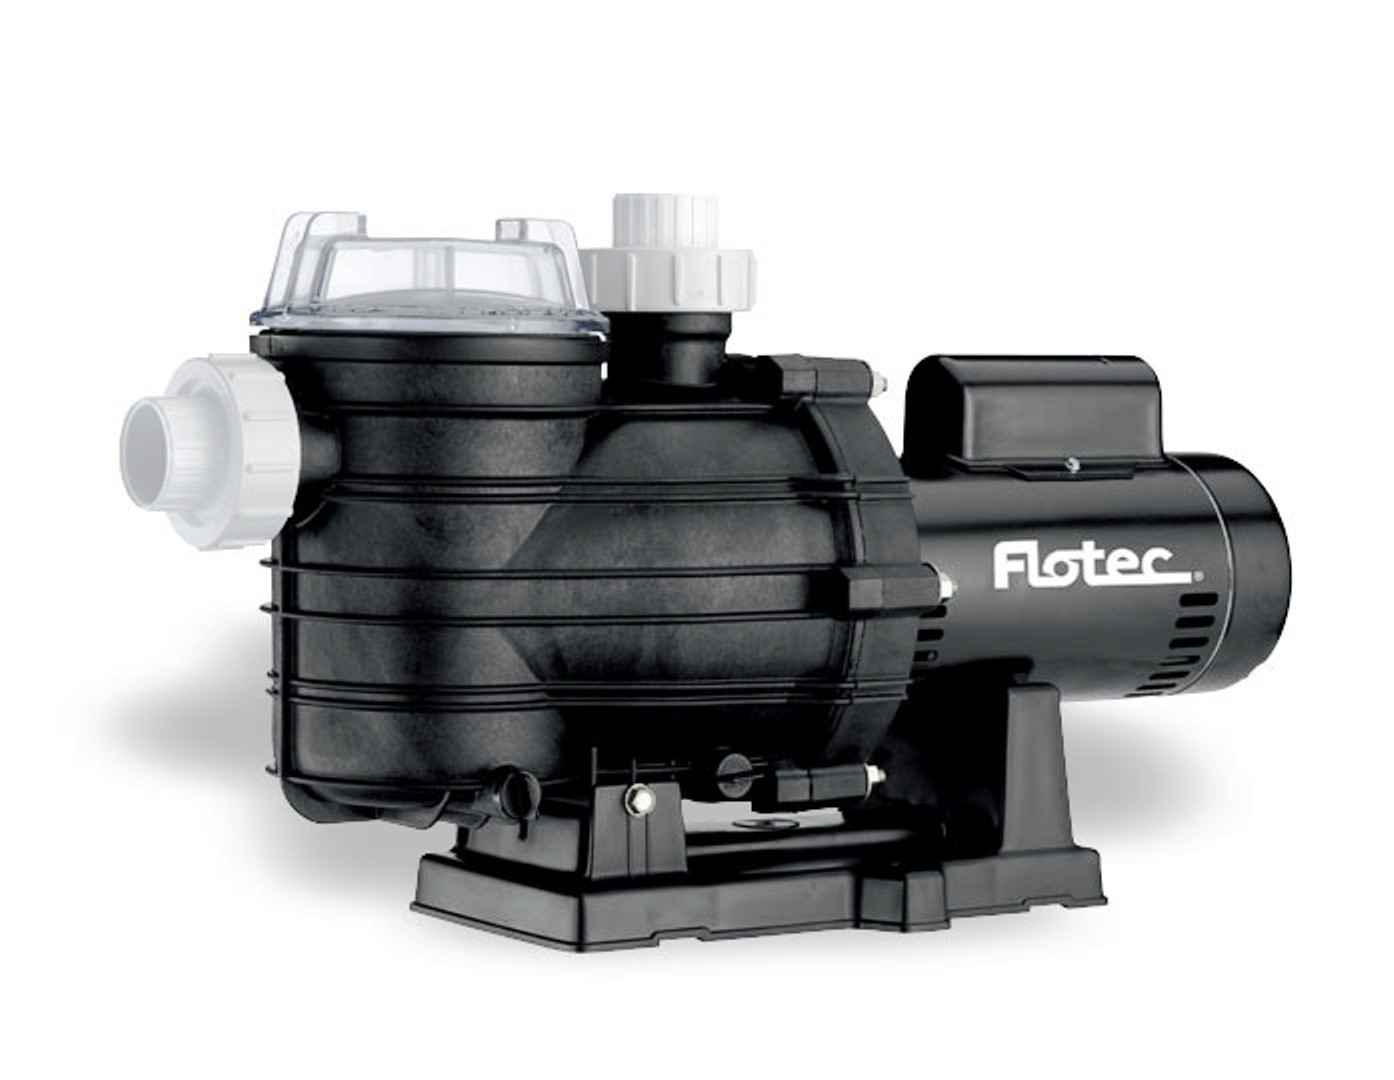 Buy The Pentair Flotec Fpt20515 Two Speed In Ground Pool